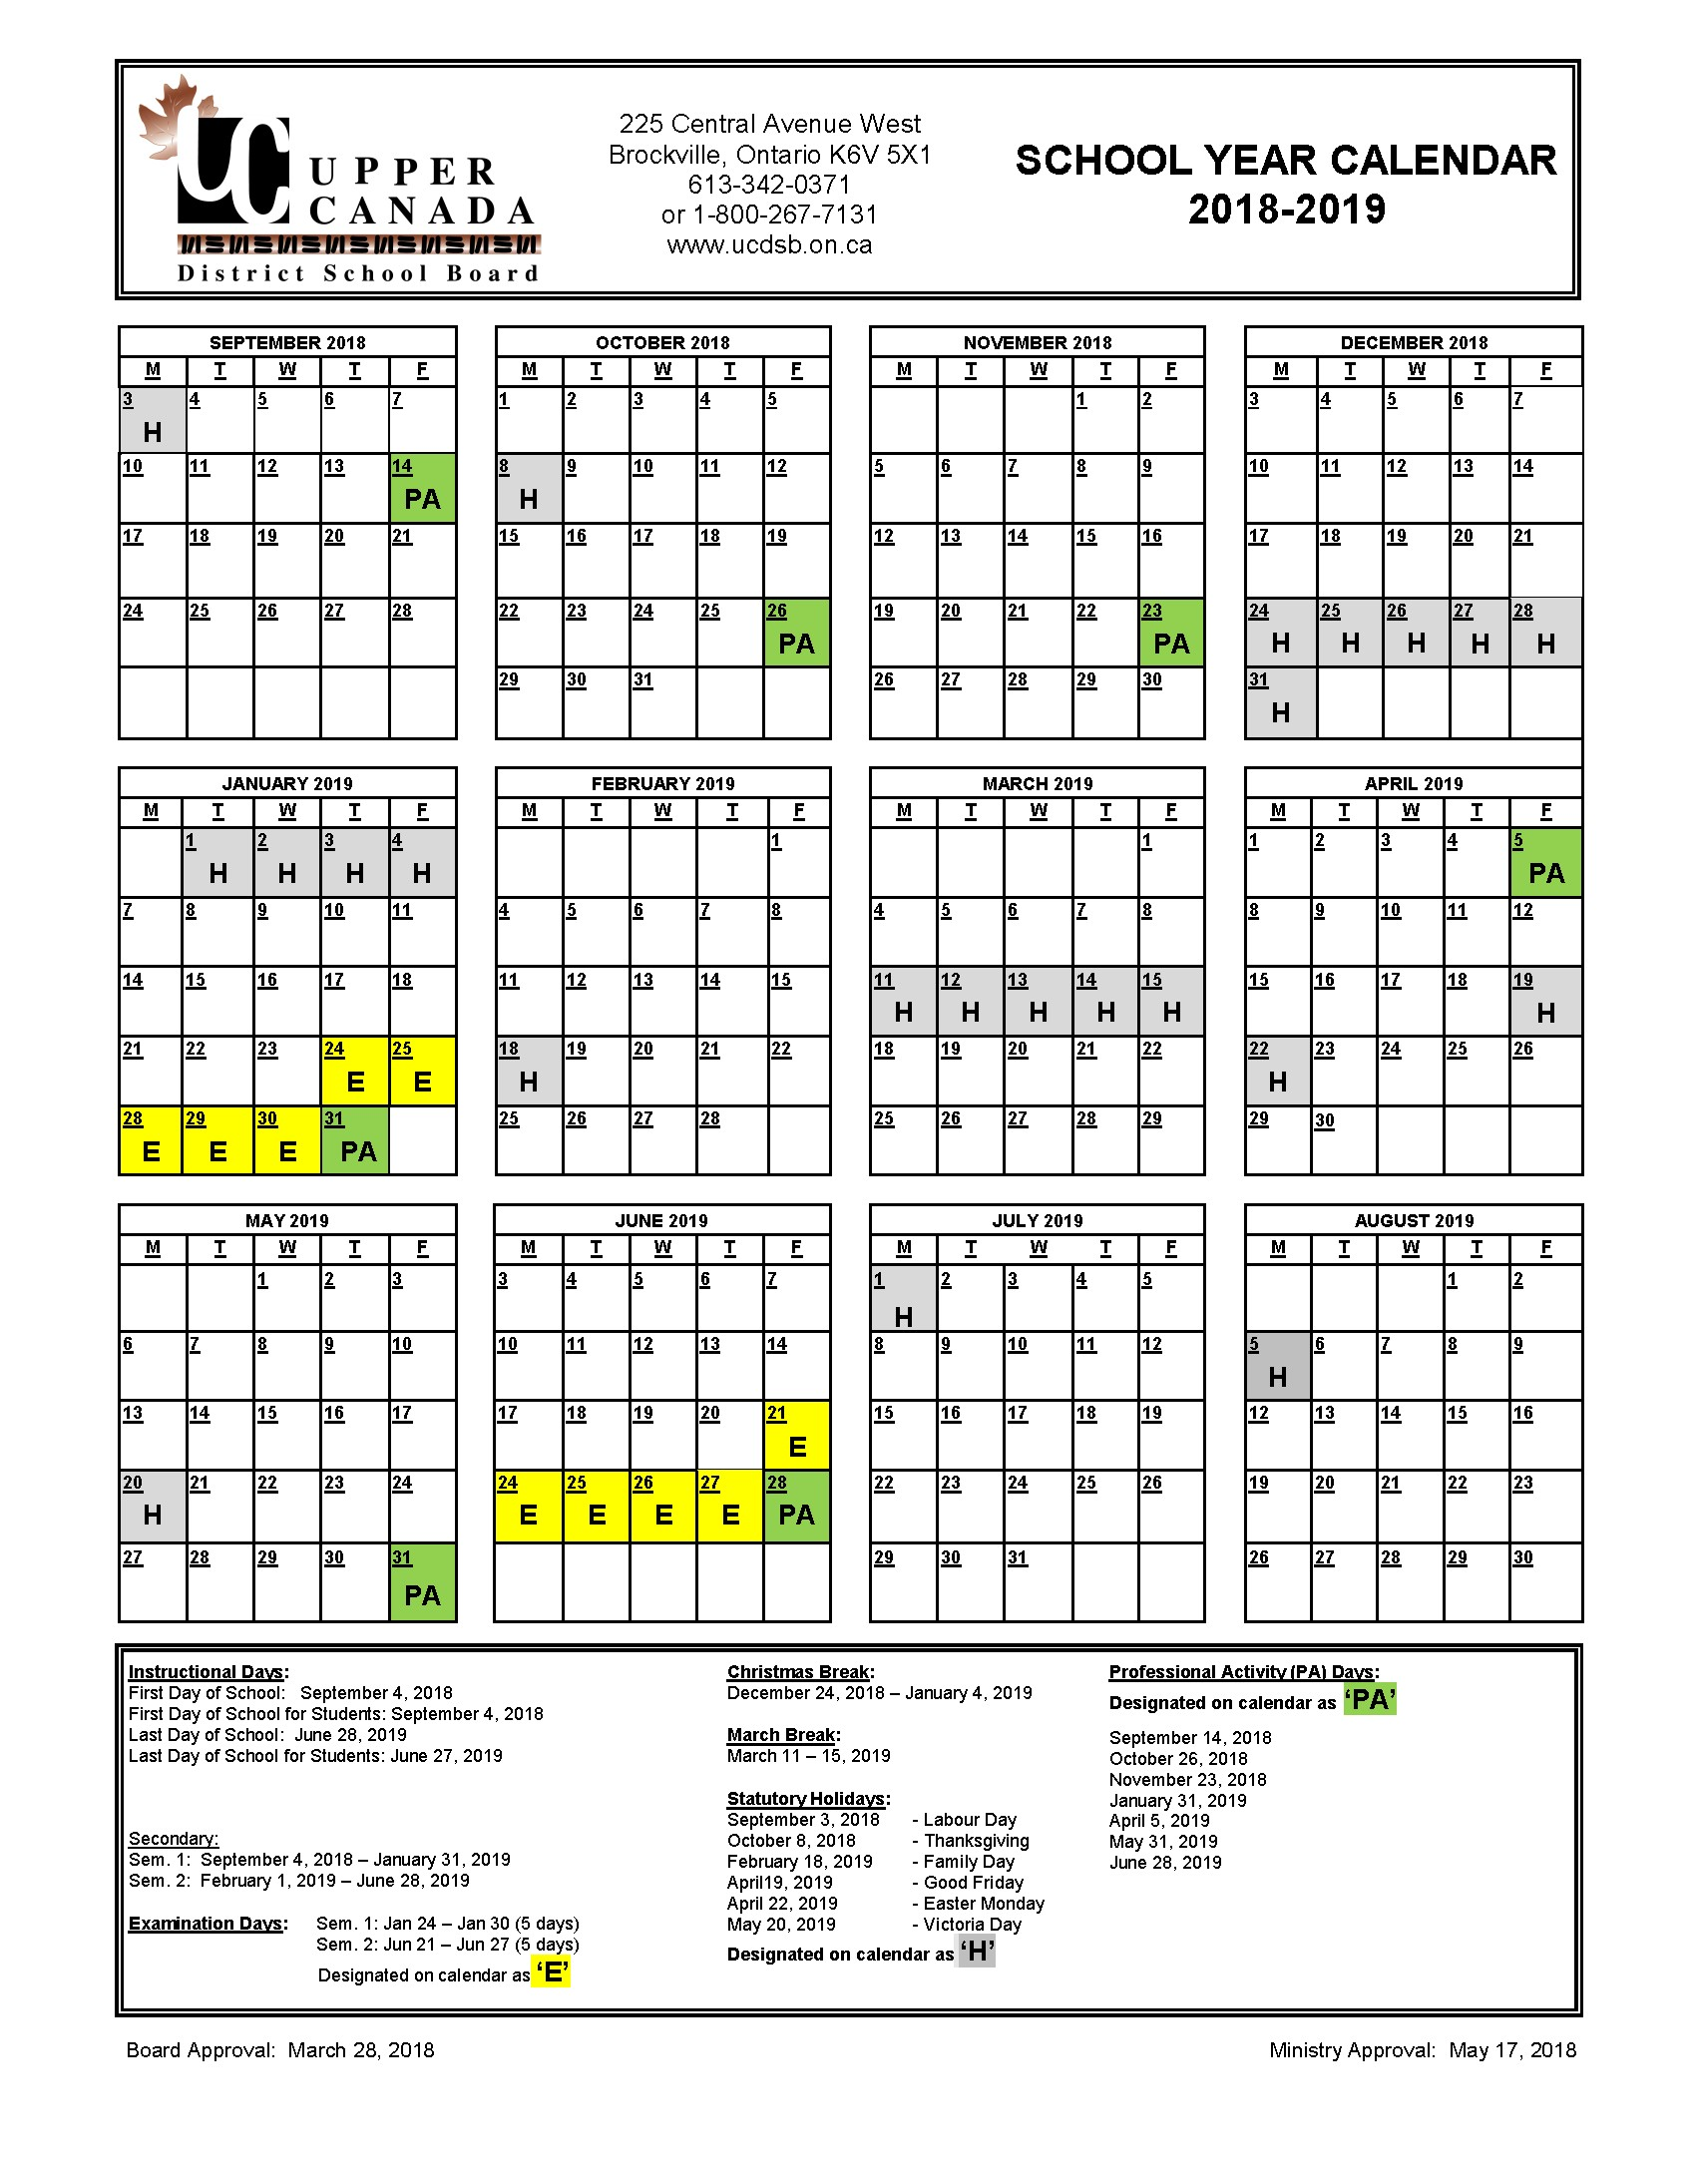 Calendario Escolar 2019 Kinder Más Reciente 2018 2019 School Year Calendar Upper Canada District School Board Of Calendario Escolar 2019 Kinder Más Reciente 2018 2019 School Year Calendar Upper Canada District School Board